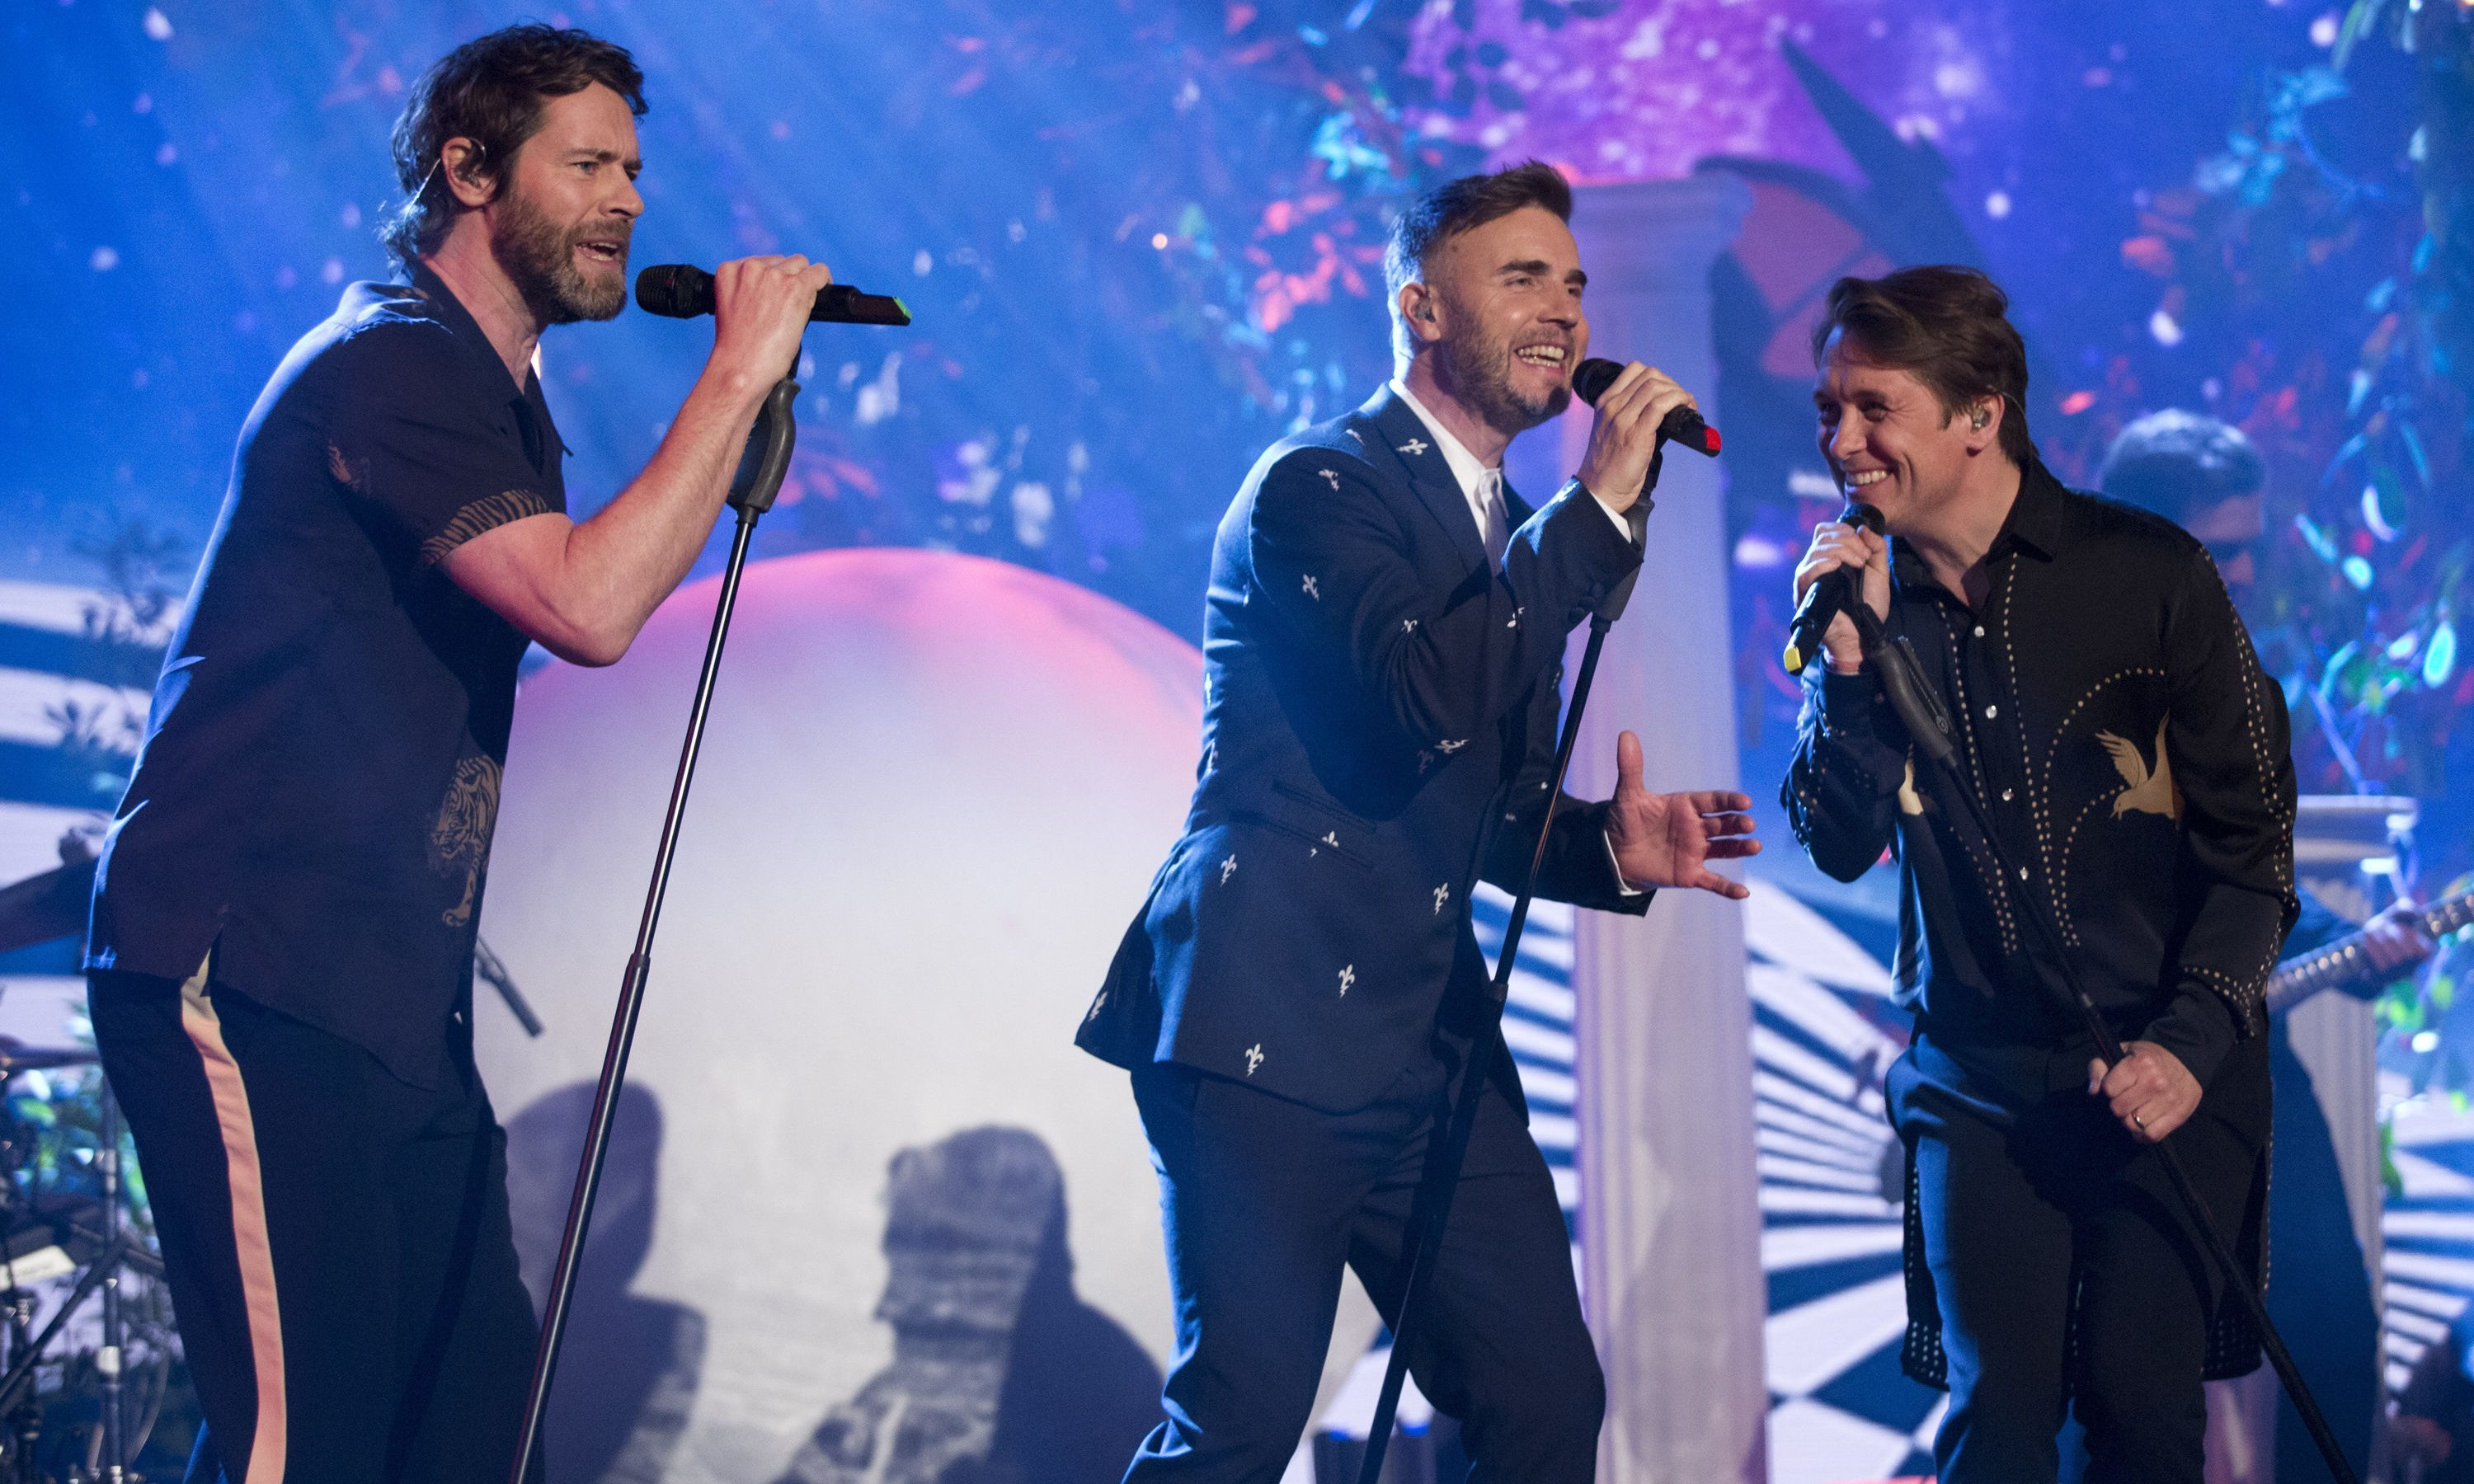 Take That will perform at the event